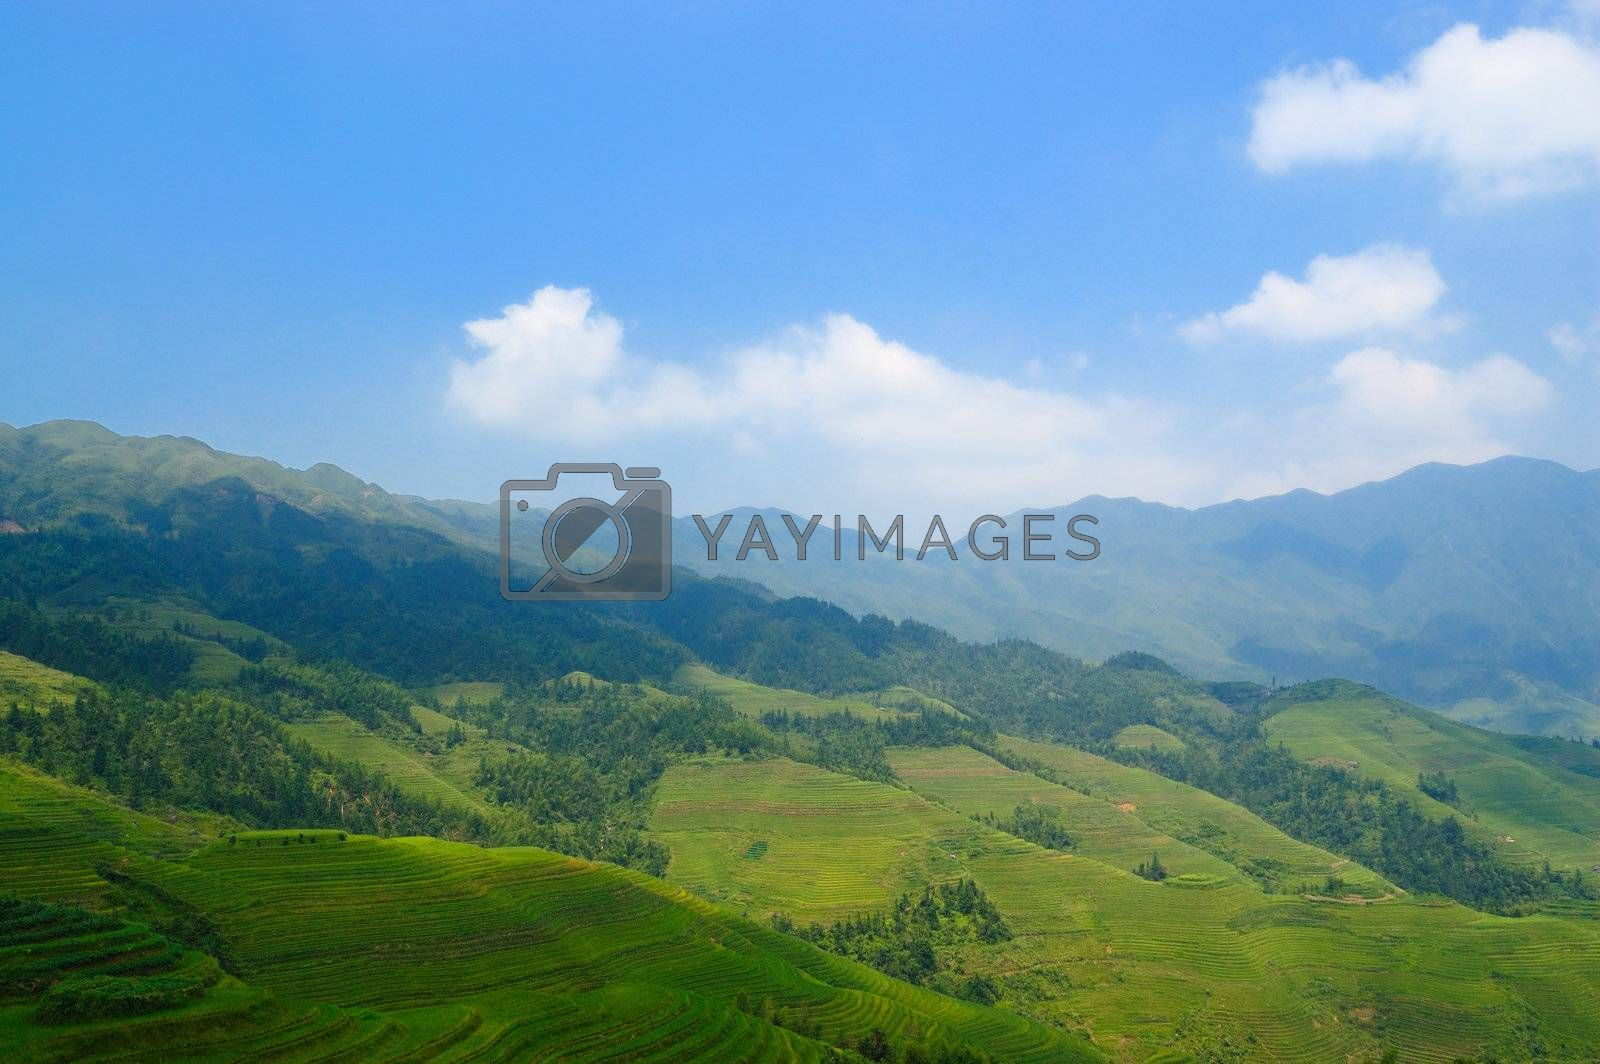 Scenic view of agricultural fields in countryside of Guangxi province, China